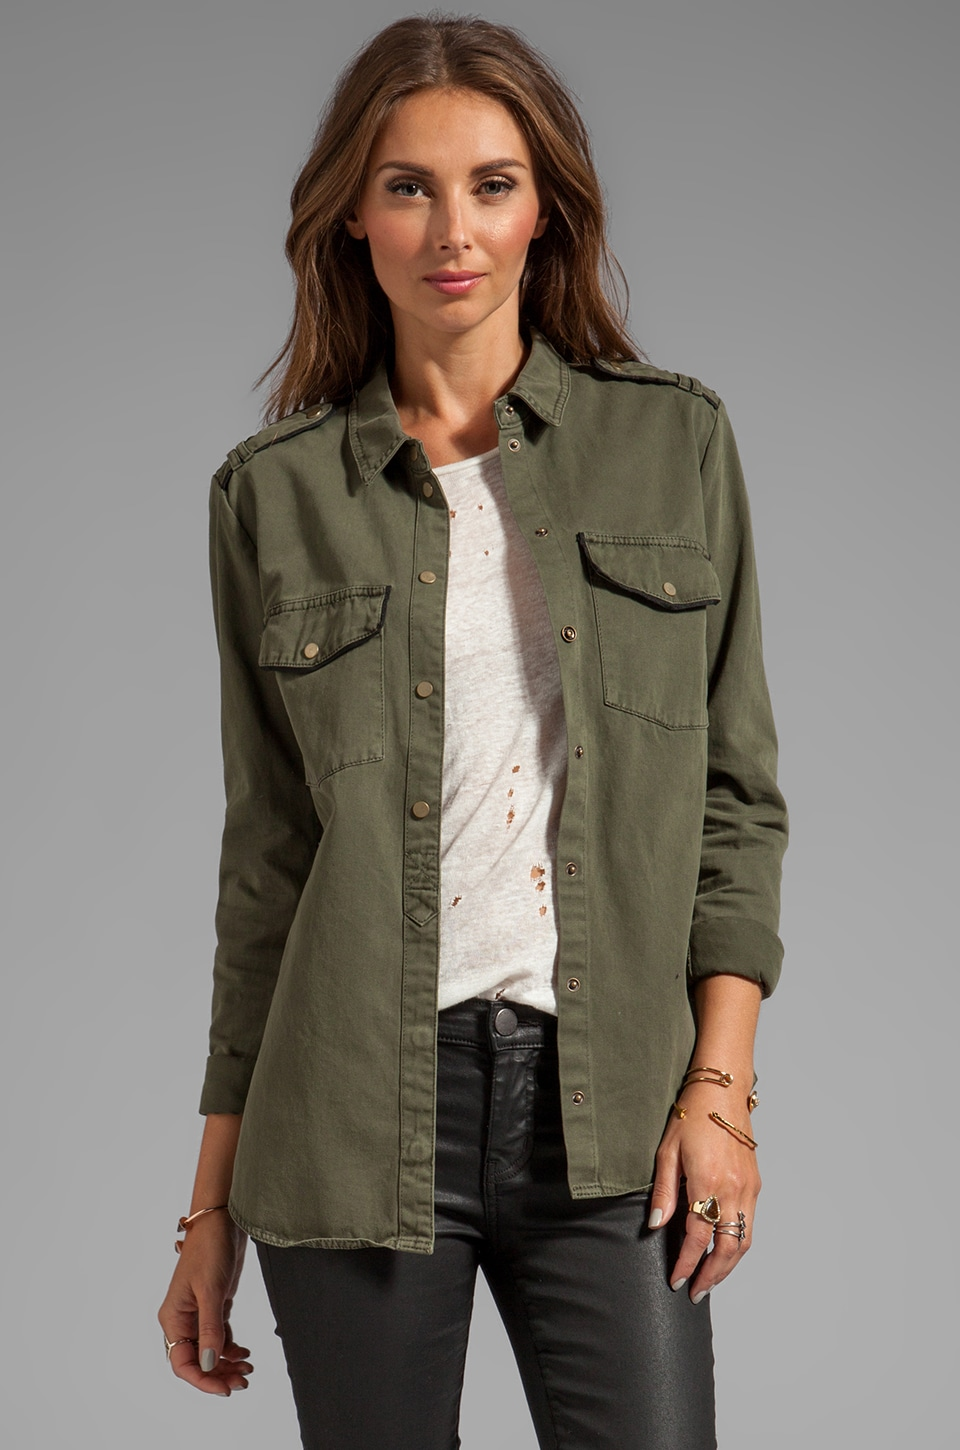 Sanctuary Army Shirt Jacket in Northern Green